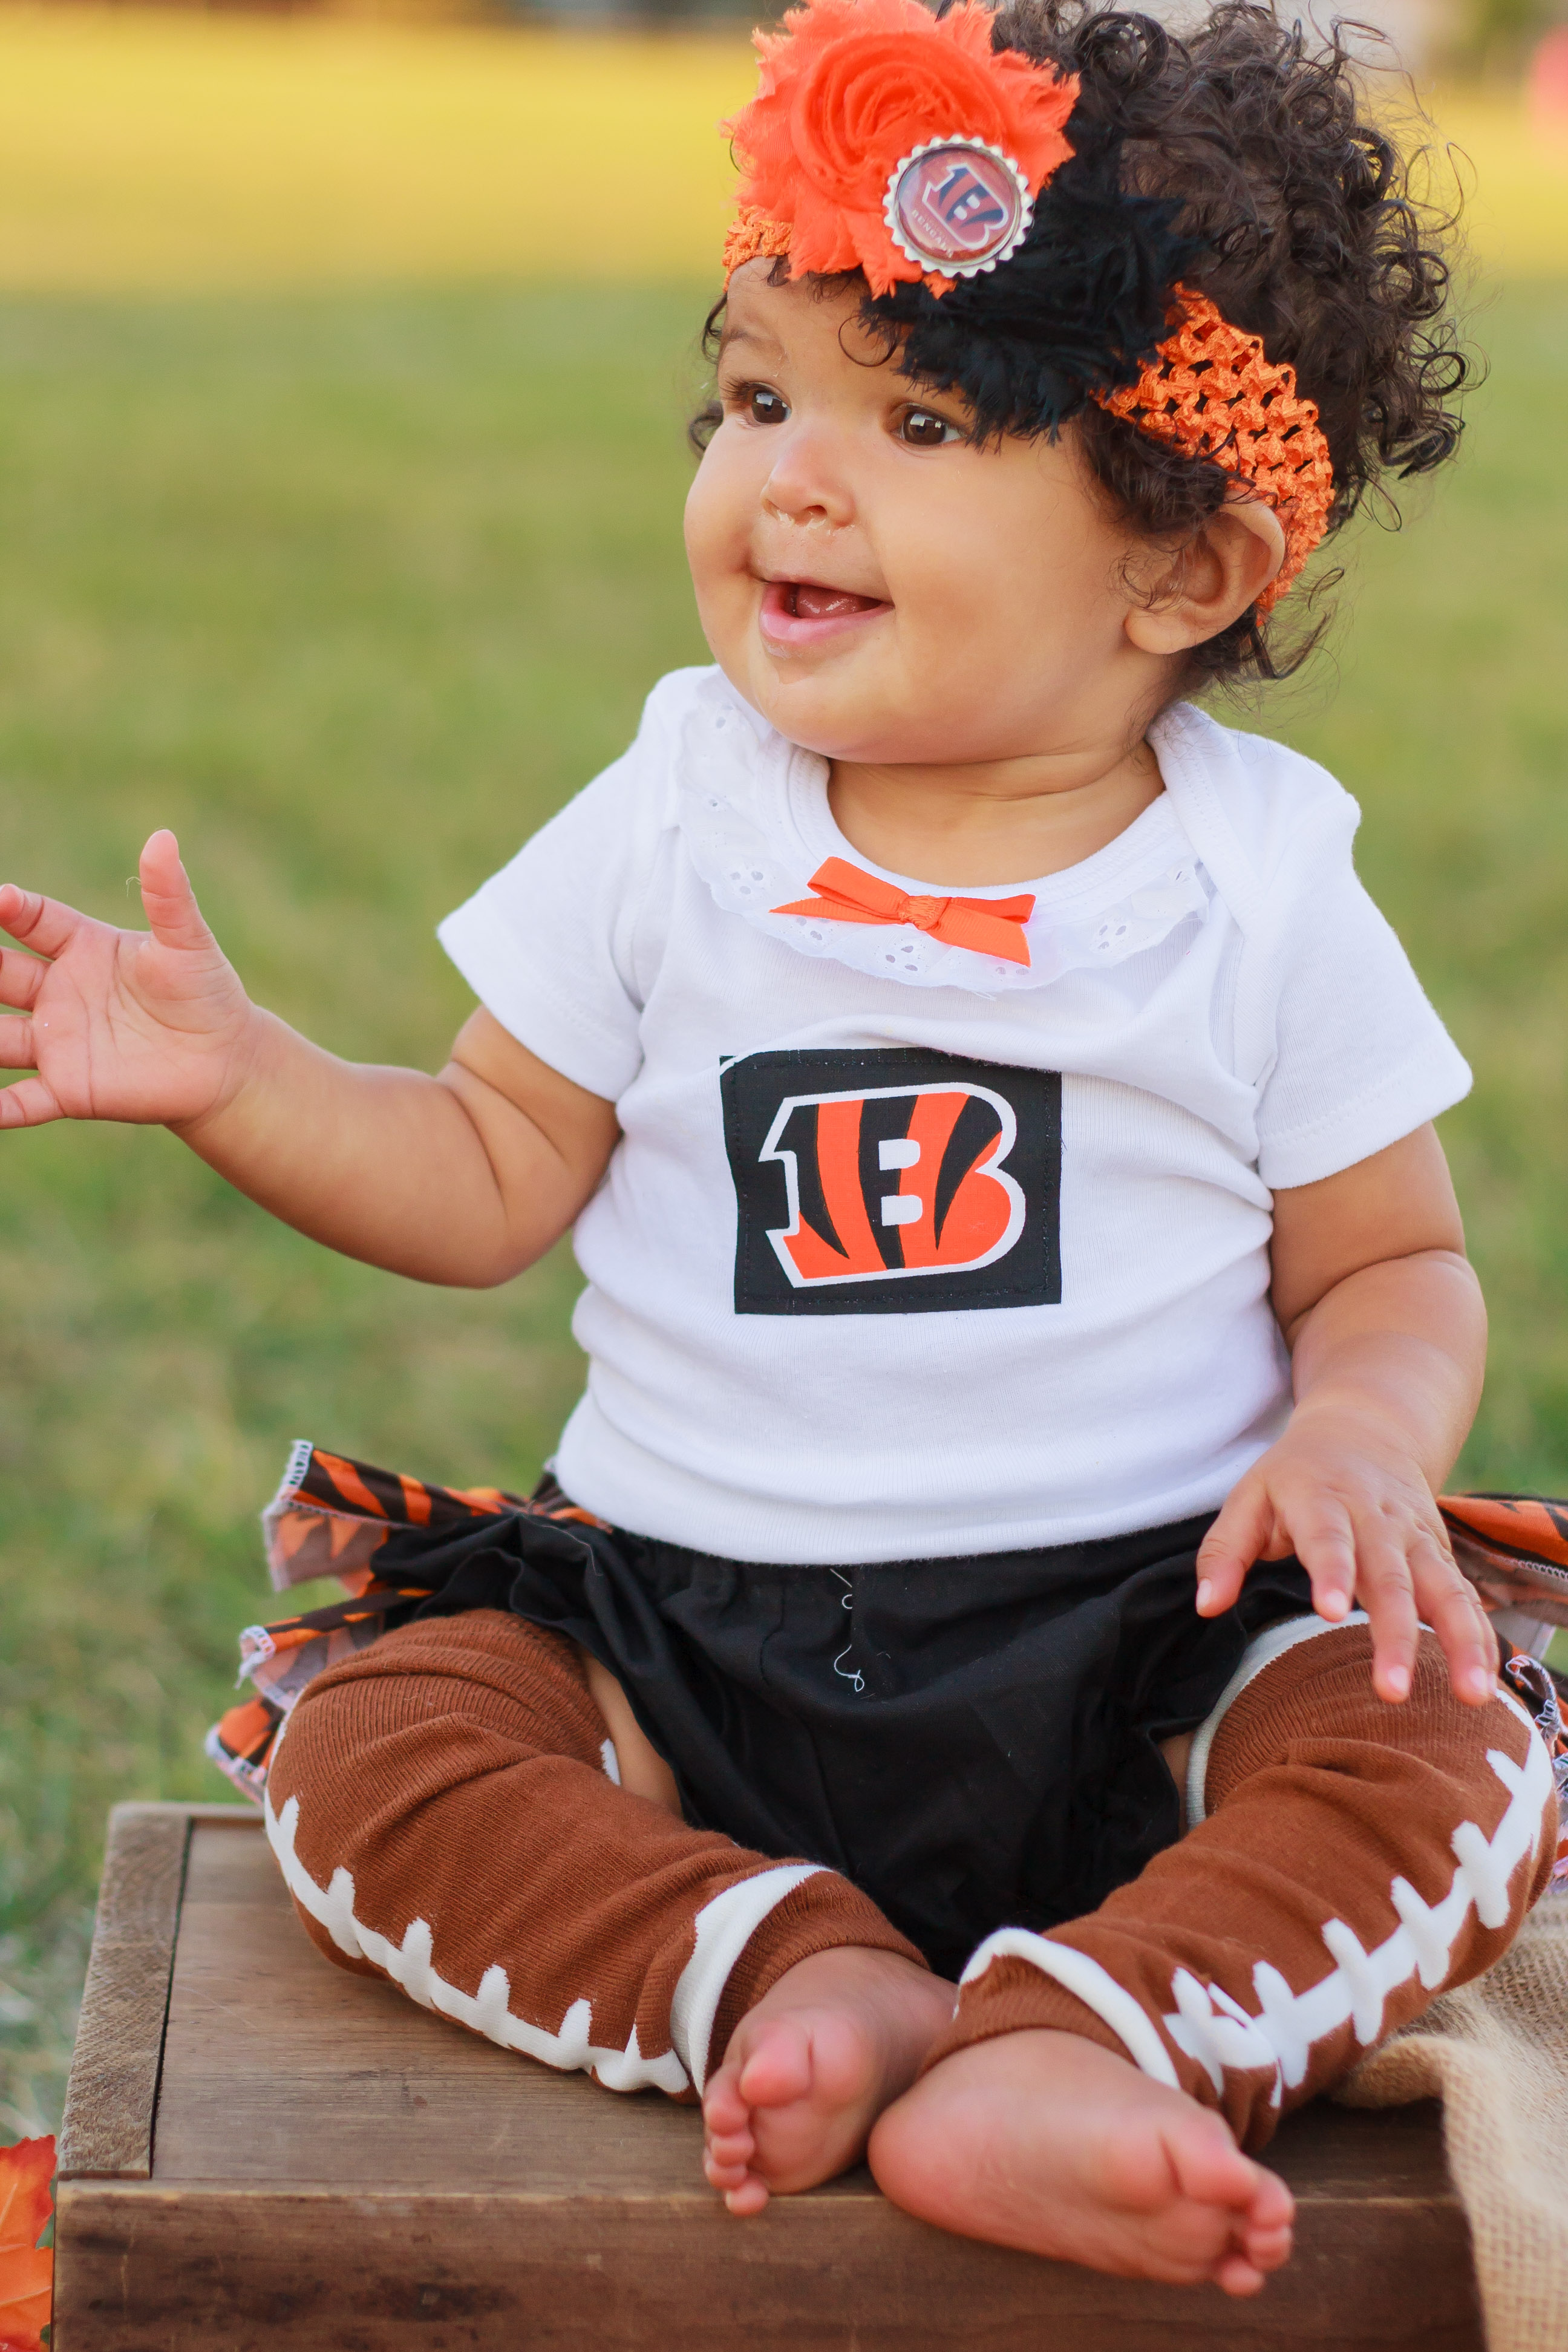 Football baby costume agree, excellent